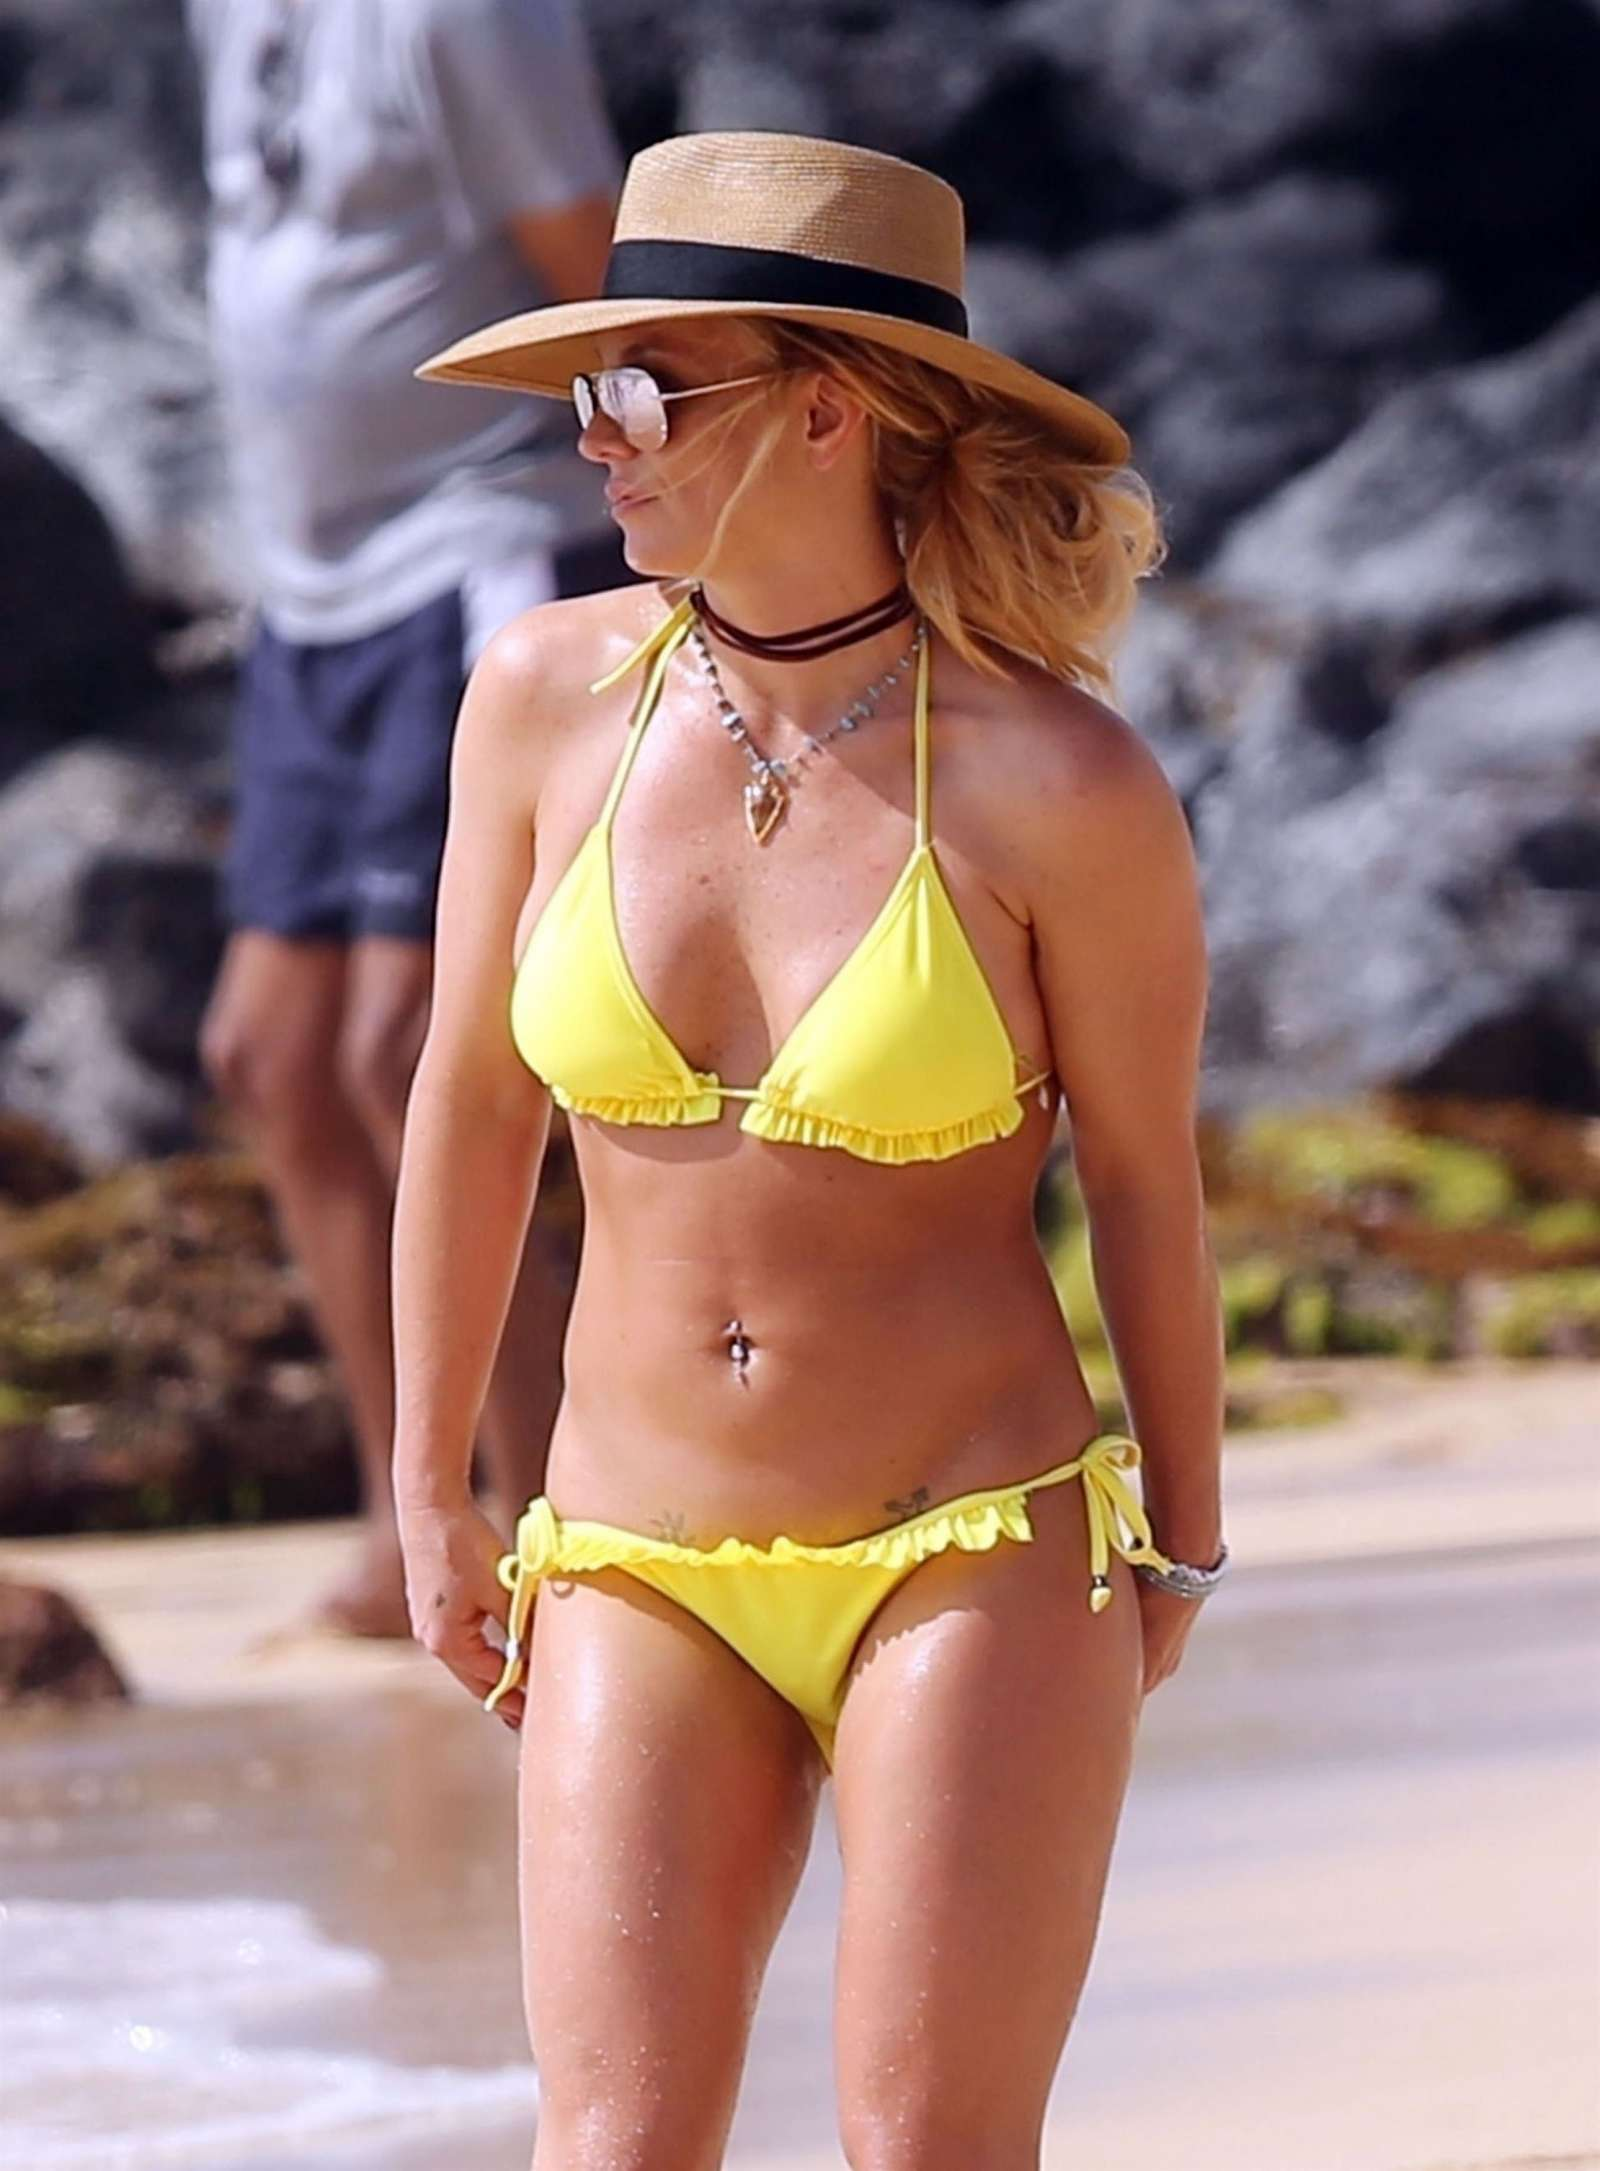 Britney Spears Yellow Bikini Candids in Hawaii Pic 6 of 35